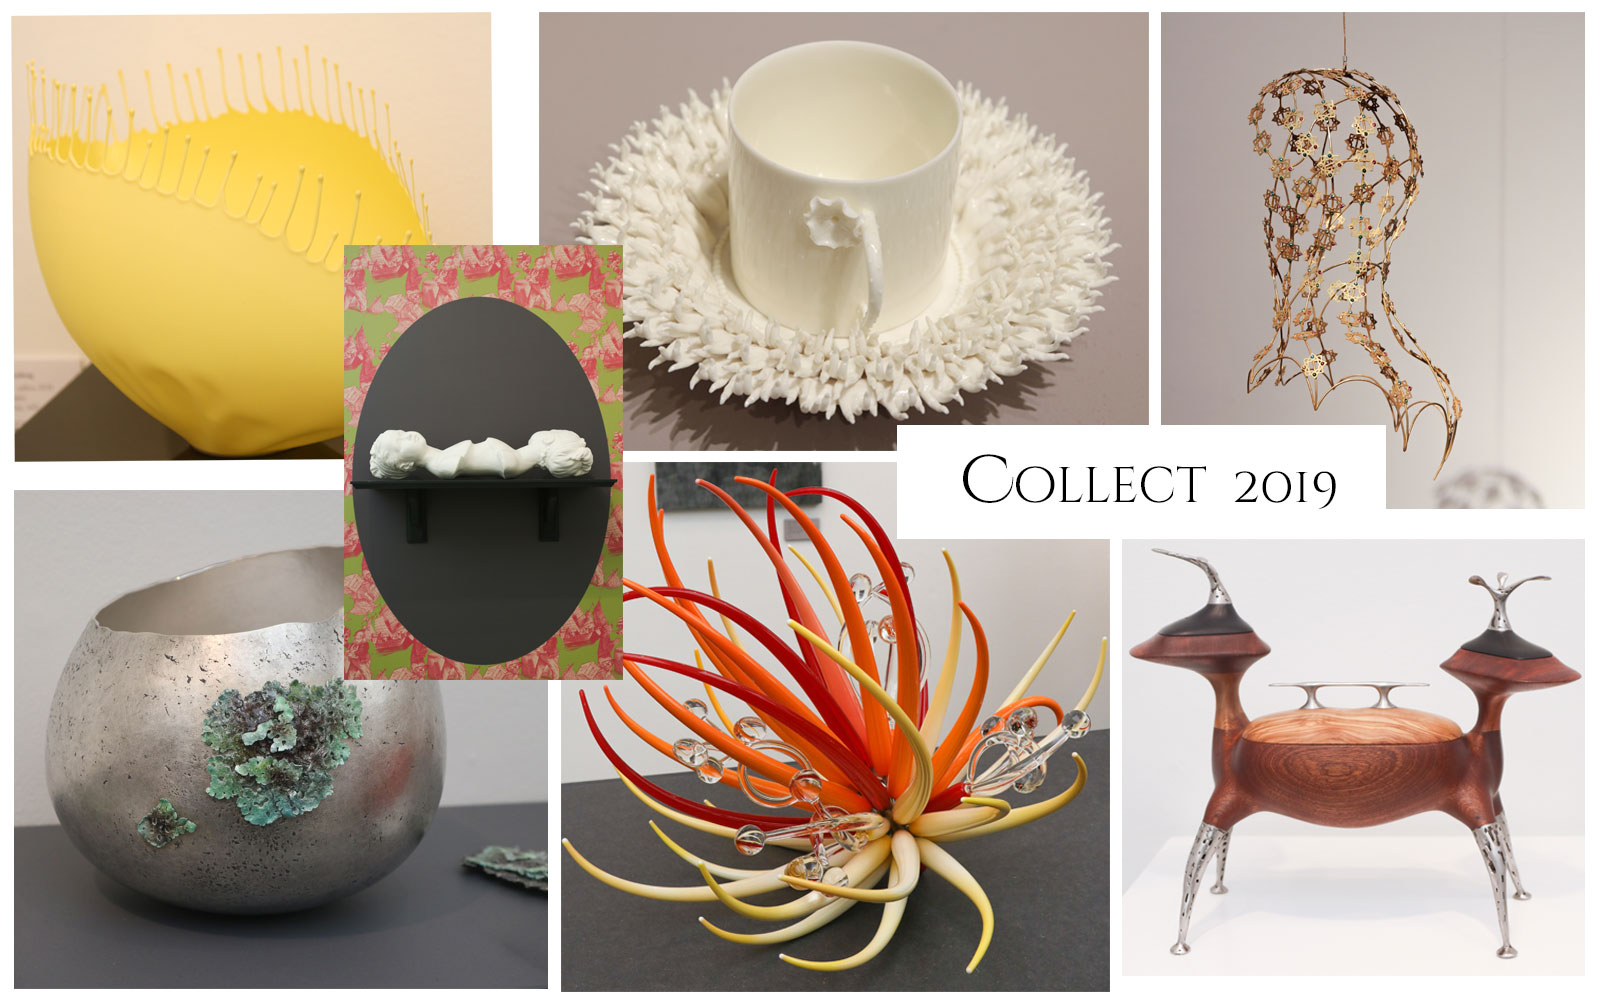 Collect 2019